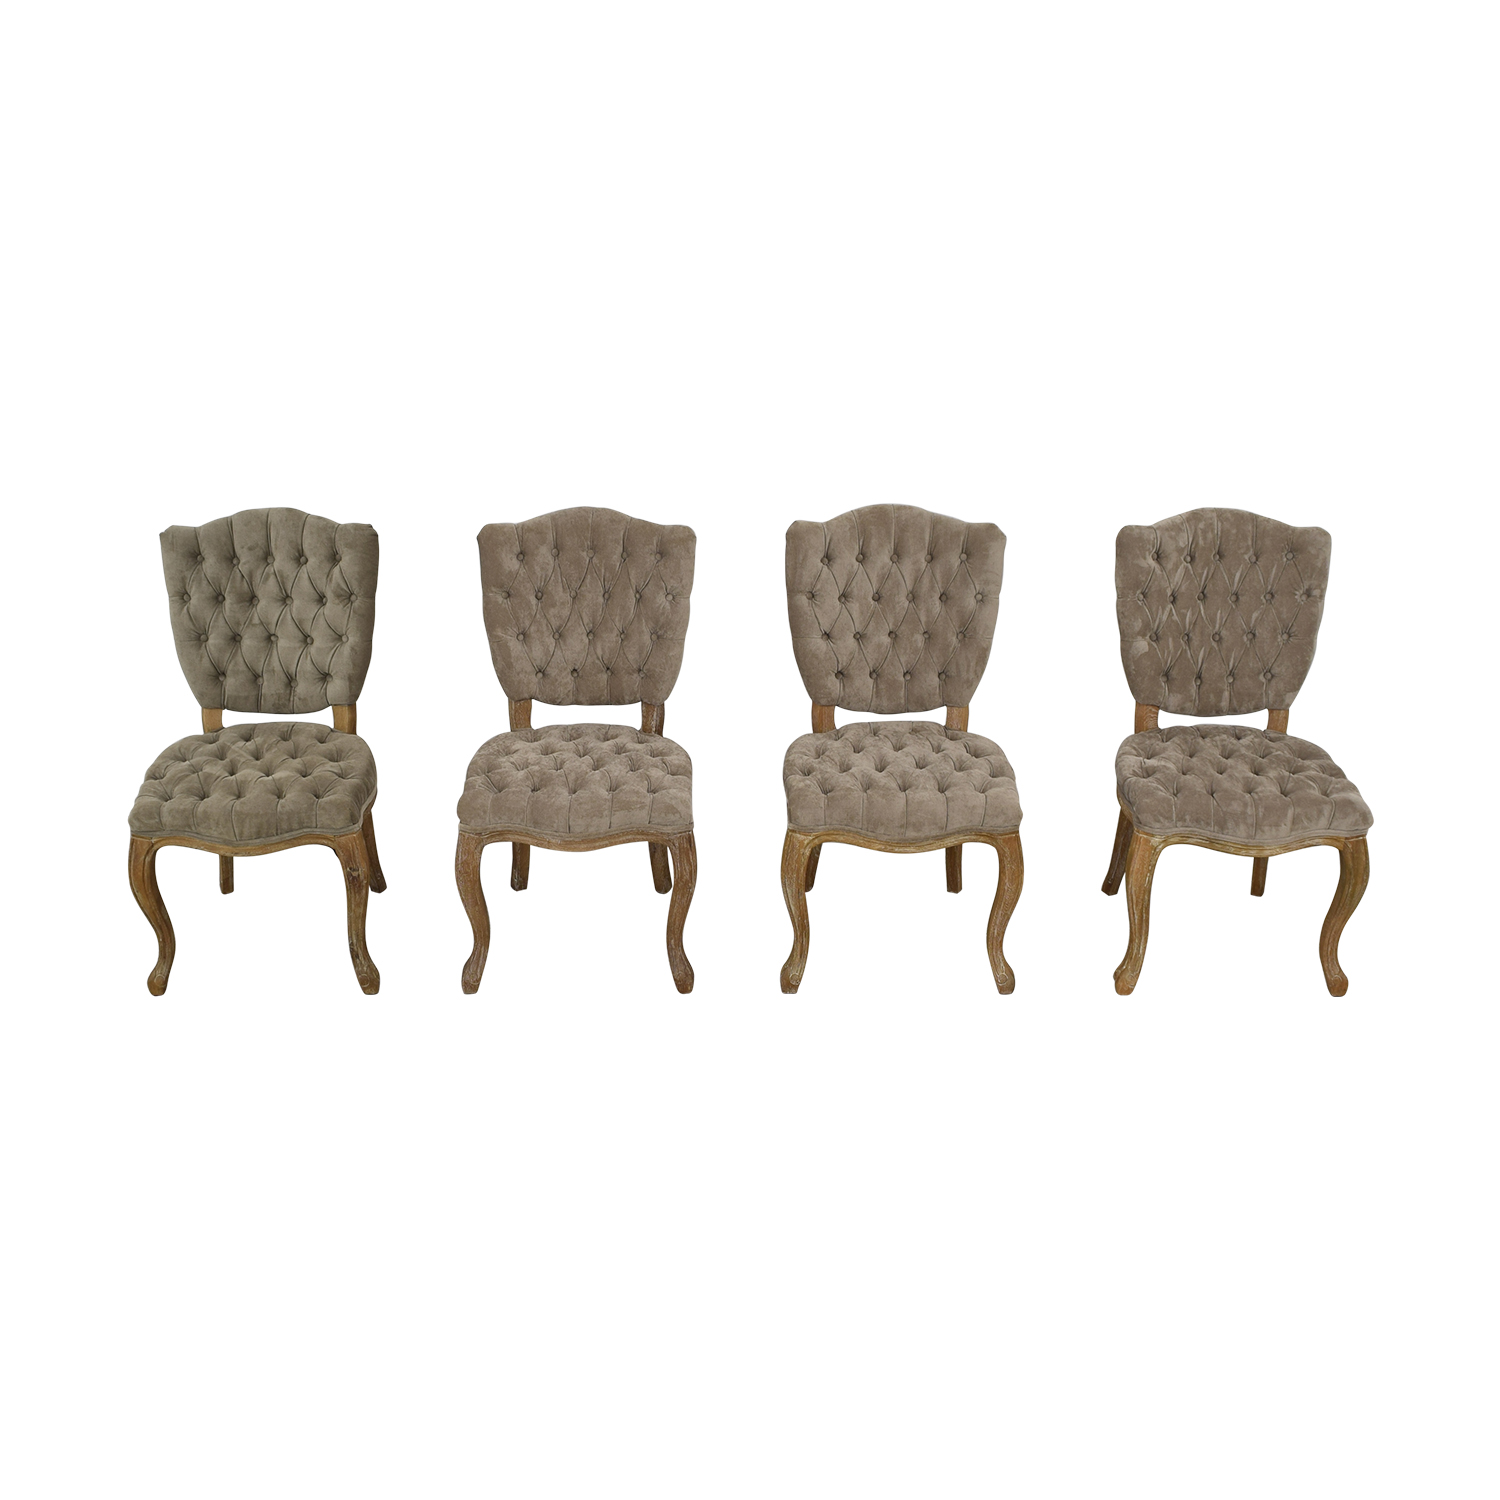 Arhaus Arhaus Ava Side Chairs for sale